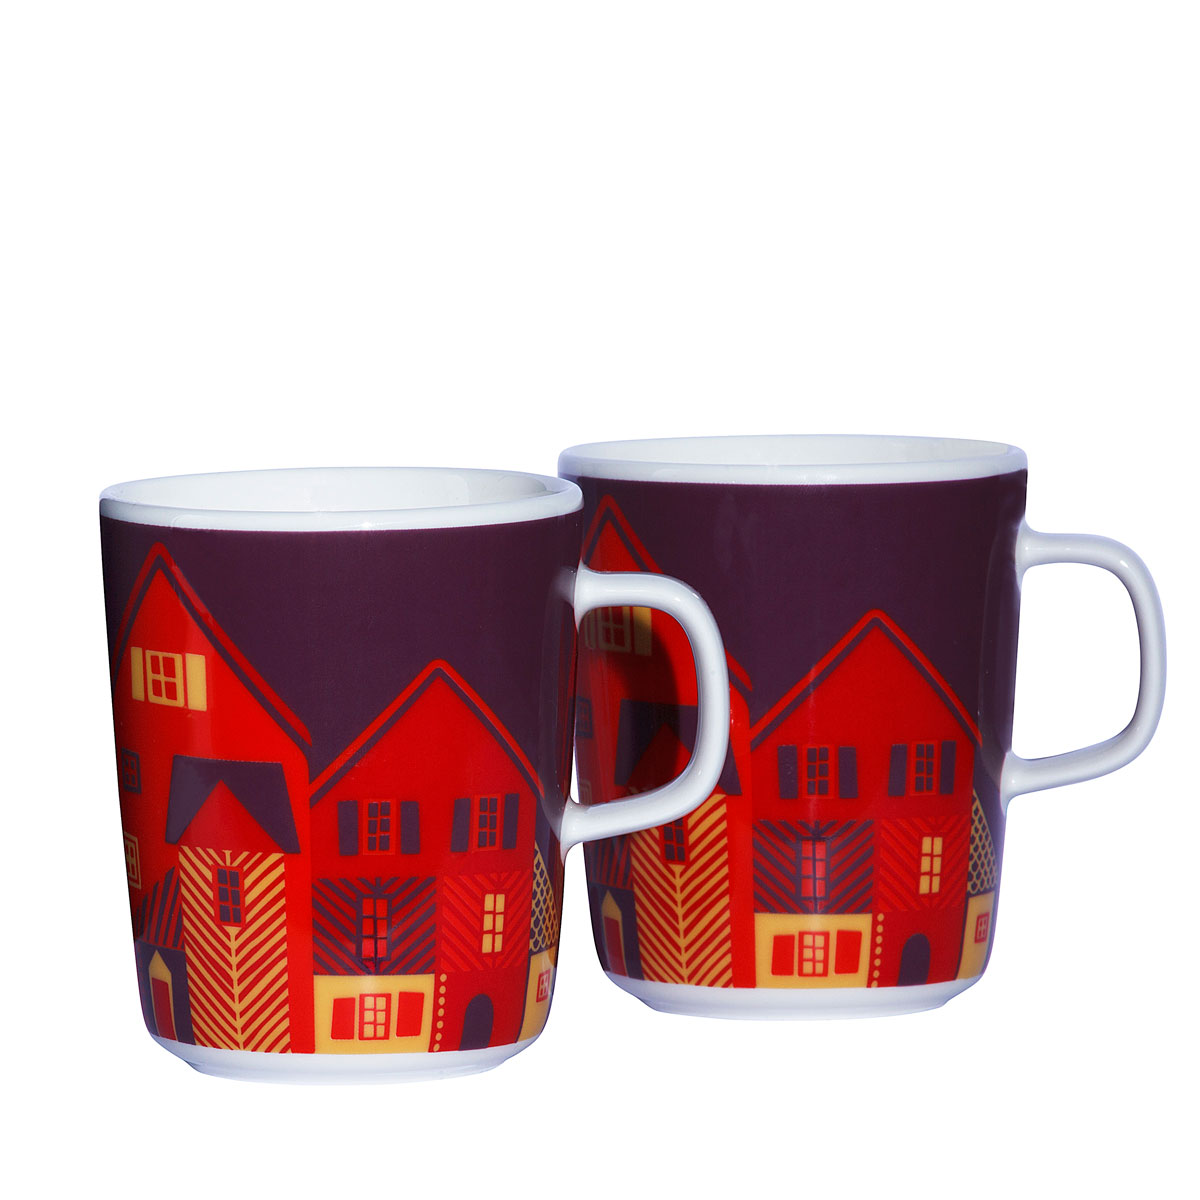 marimekko vanhakaupunki mug set marimekko kitchen dining sale. Black Bedroom Furniture Sets. Home Design Ideas